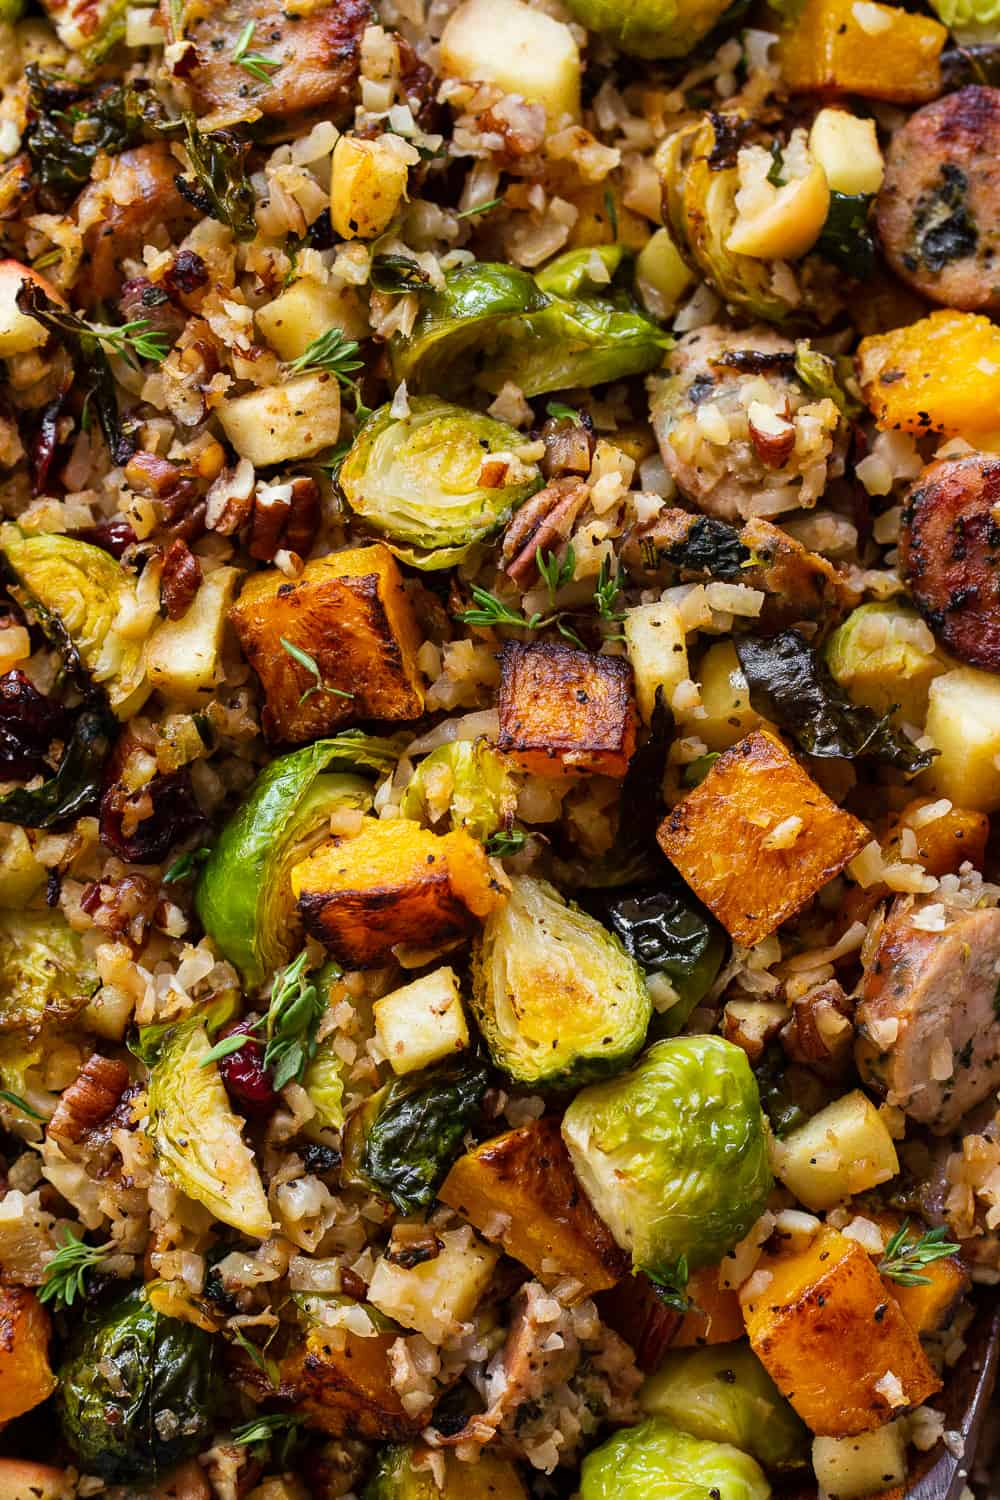 This savory and sweet harvest casserole is packed with veggies, protein, fresh herbs and all the best fall flavors! Serve it as a holiday side dish or a special seasonal meal. The leftovers are delicious for any meal! Paleo friendly, dairy free, Whole30. #paleo #whole30 #cleaneating